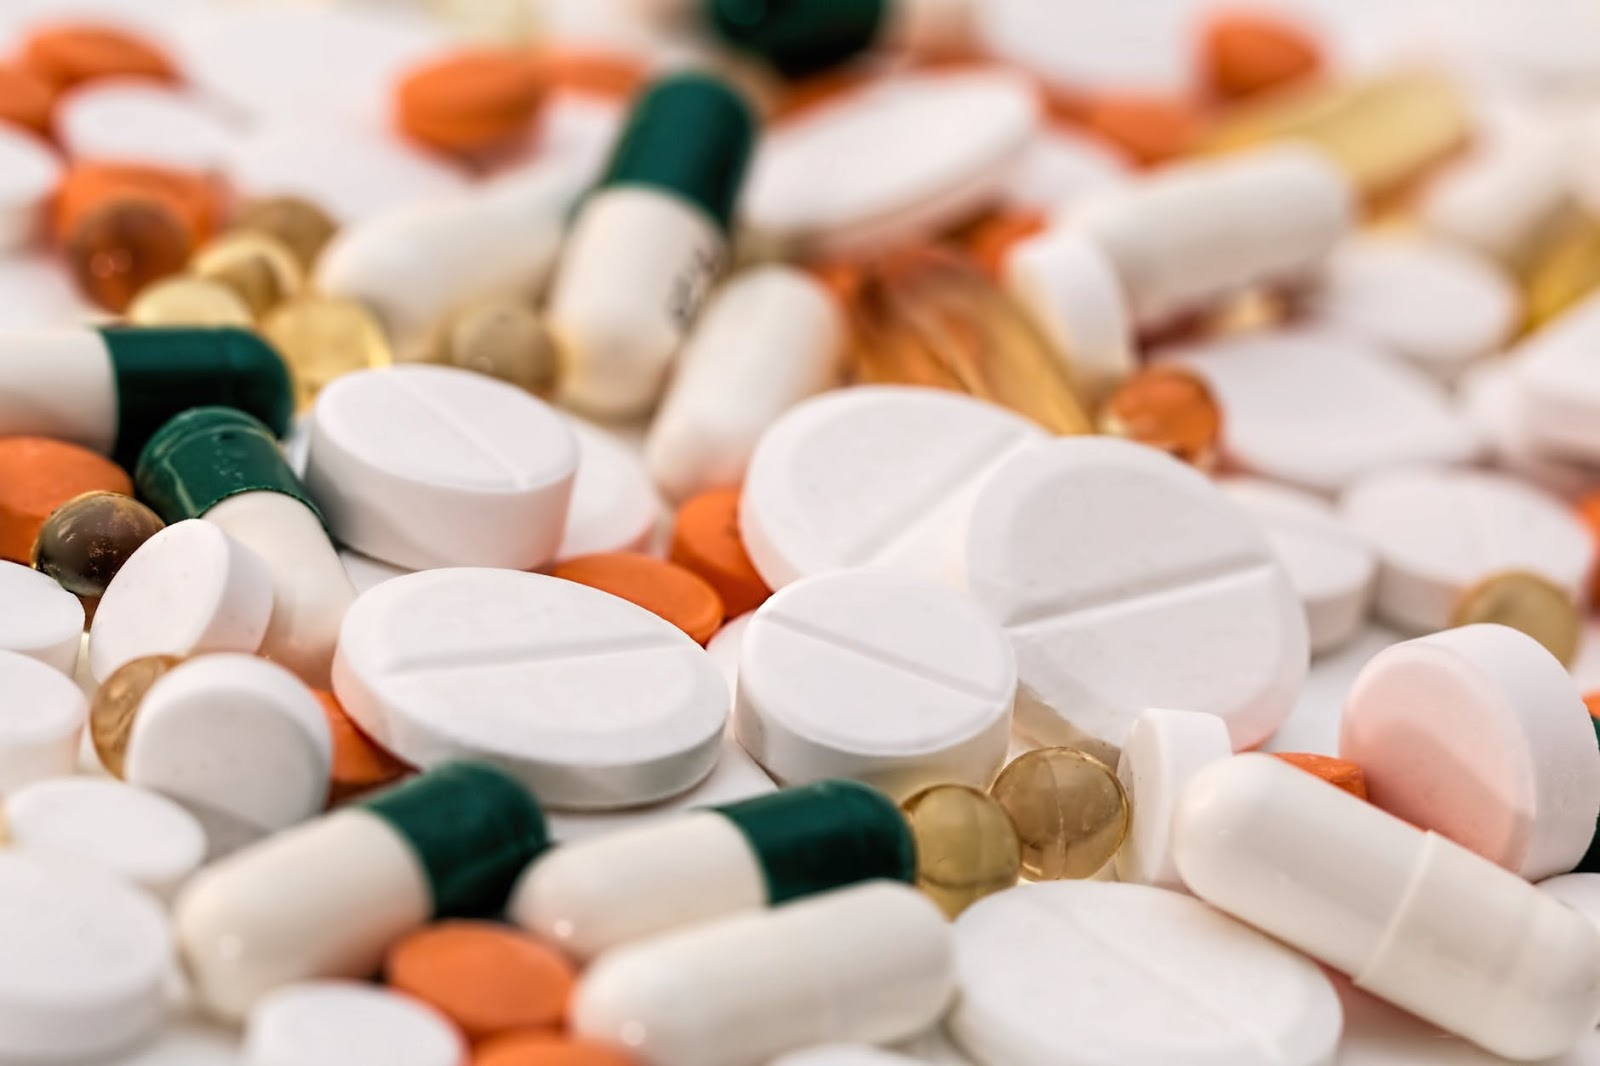 A close up of a variety of pills.